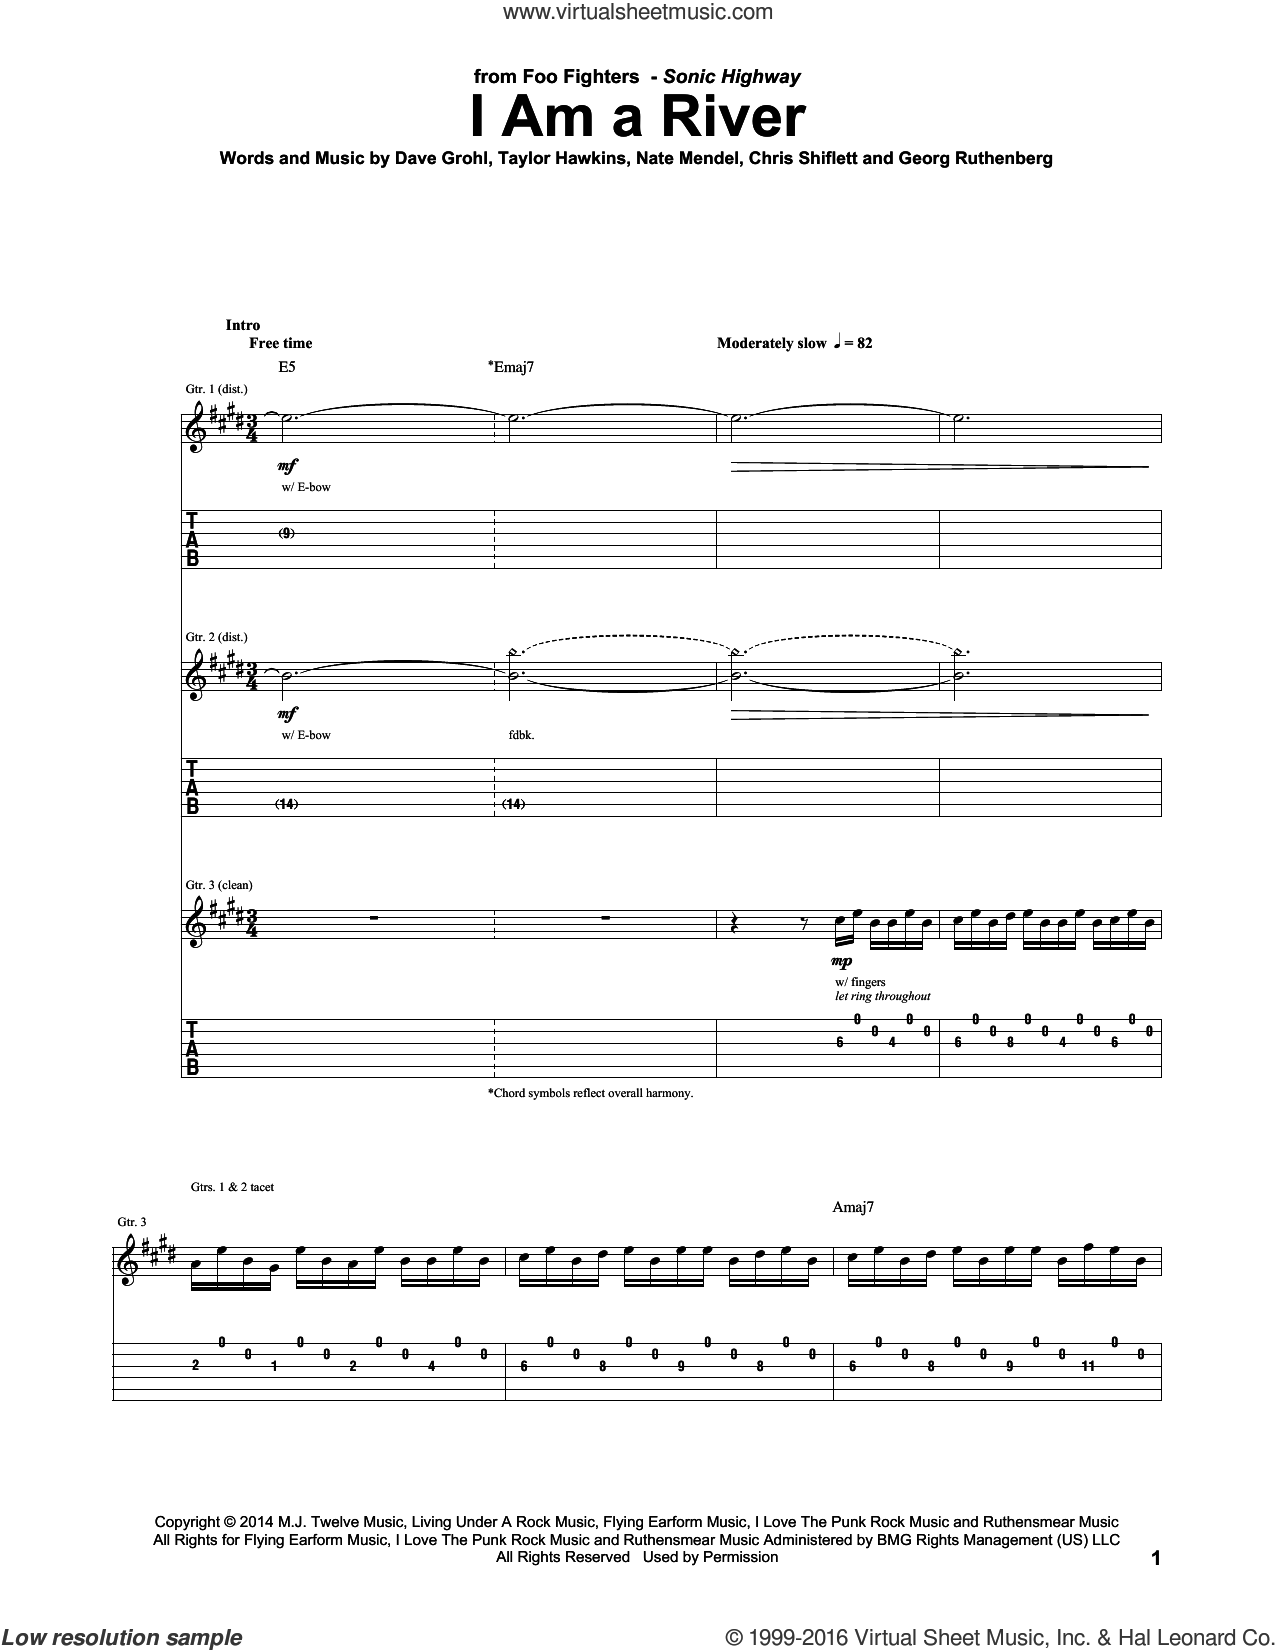 I Am A River sheet music for guitar (tablature) by Taylor Hawkins, Foo Fighters, Chris Shiflett, Dave Grohl and Nate Mendel. Score Image Preview.